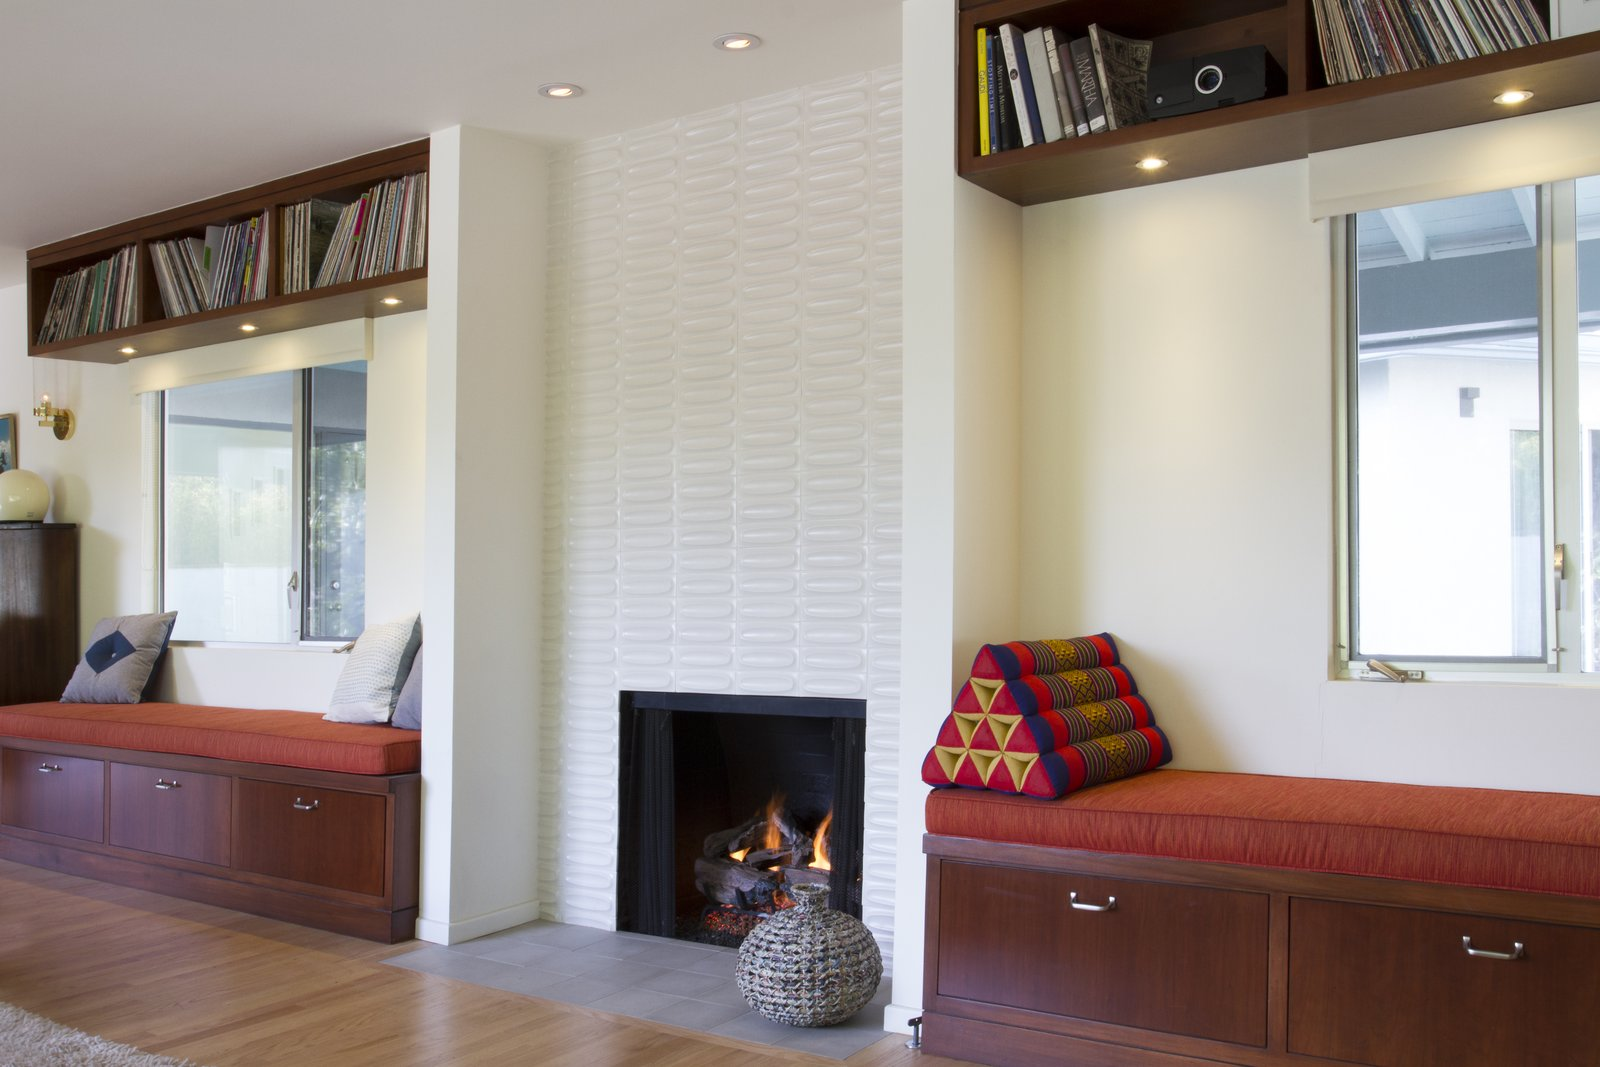 The panoply of tile continues in the living room, which is anchored by a second fireplace that Karen wrapped in oval Heath tile. The architects tactically preserved the home's most worthwhile features and modernized the rest, such as the vinyl windows they replaced with natural milled aluminum.